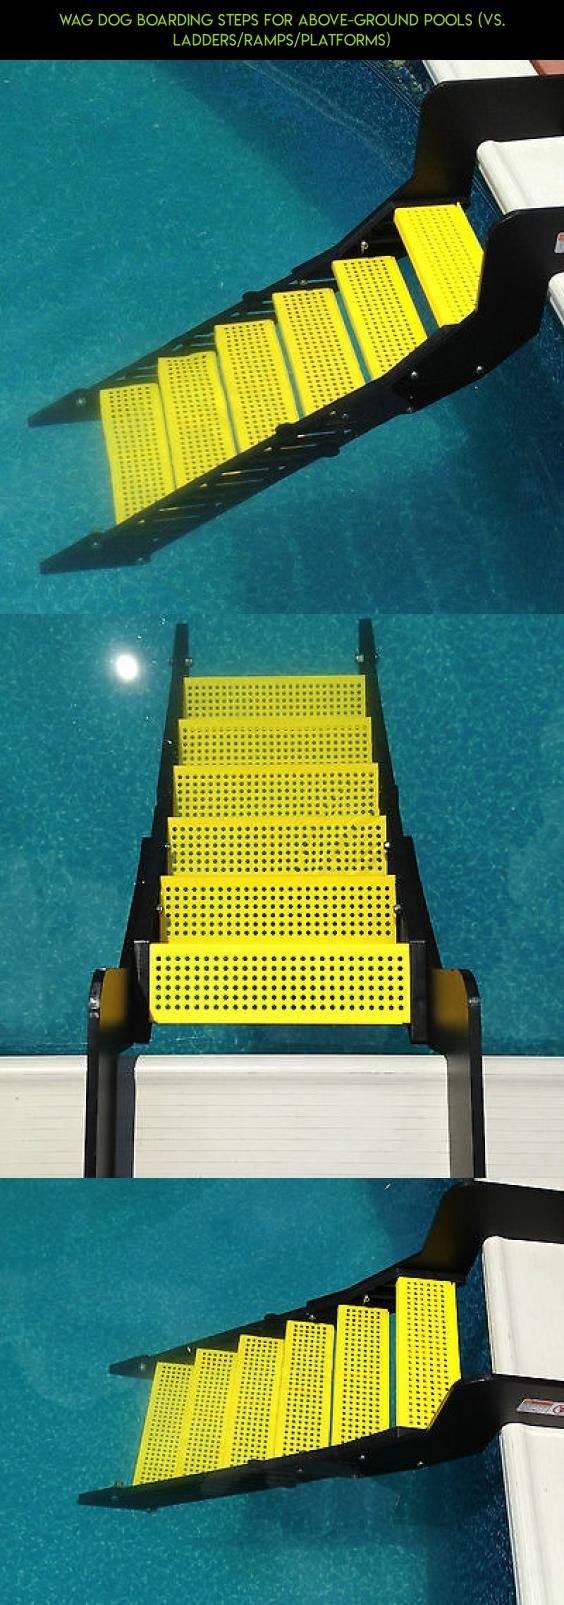 Best 25 above ground pool parts ideas on pinterest for Pool platform ideas